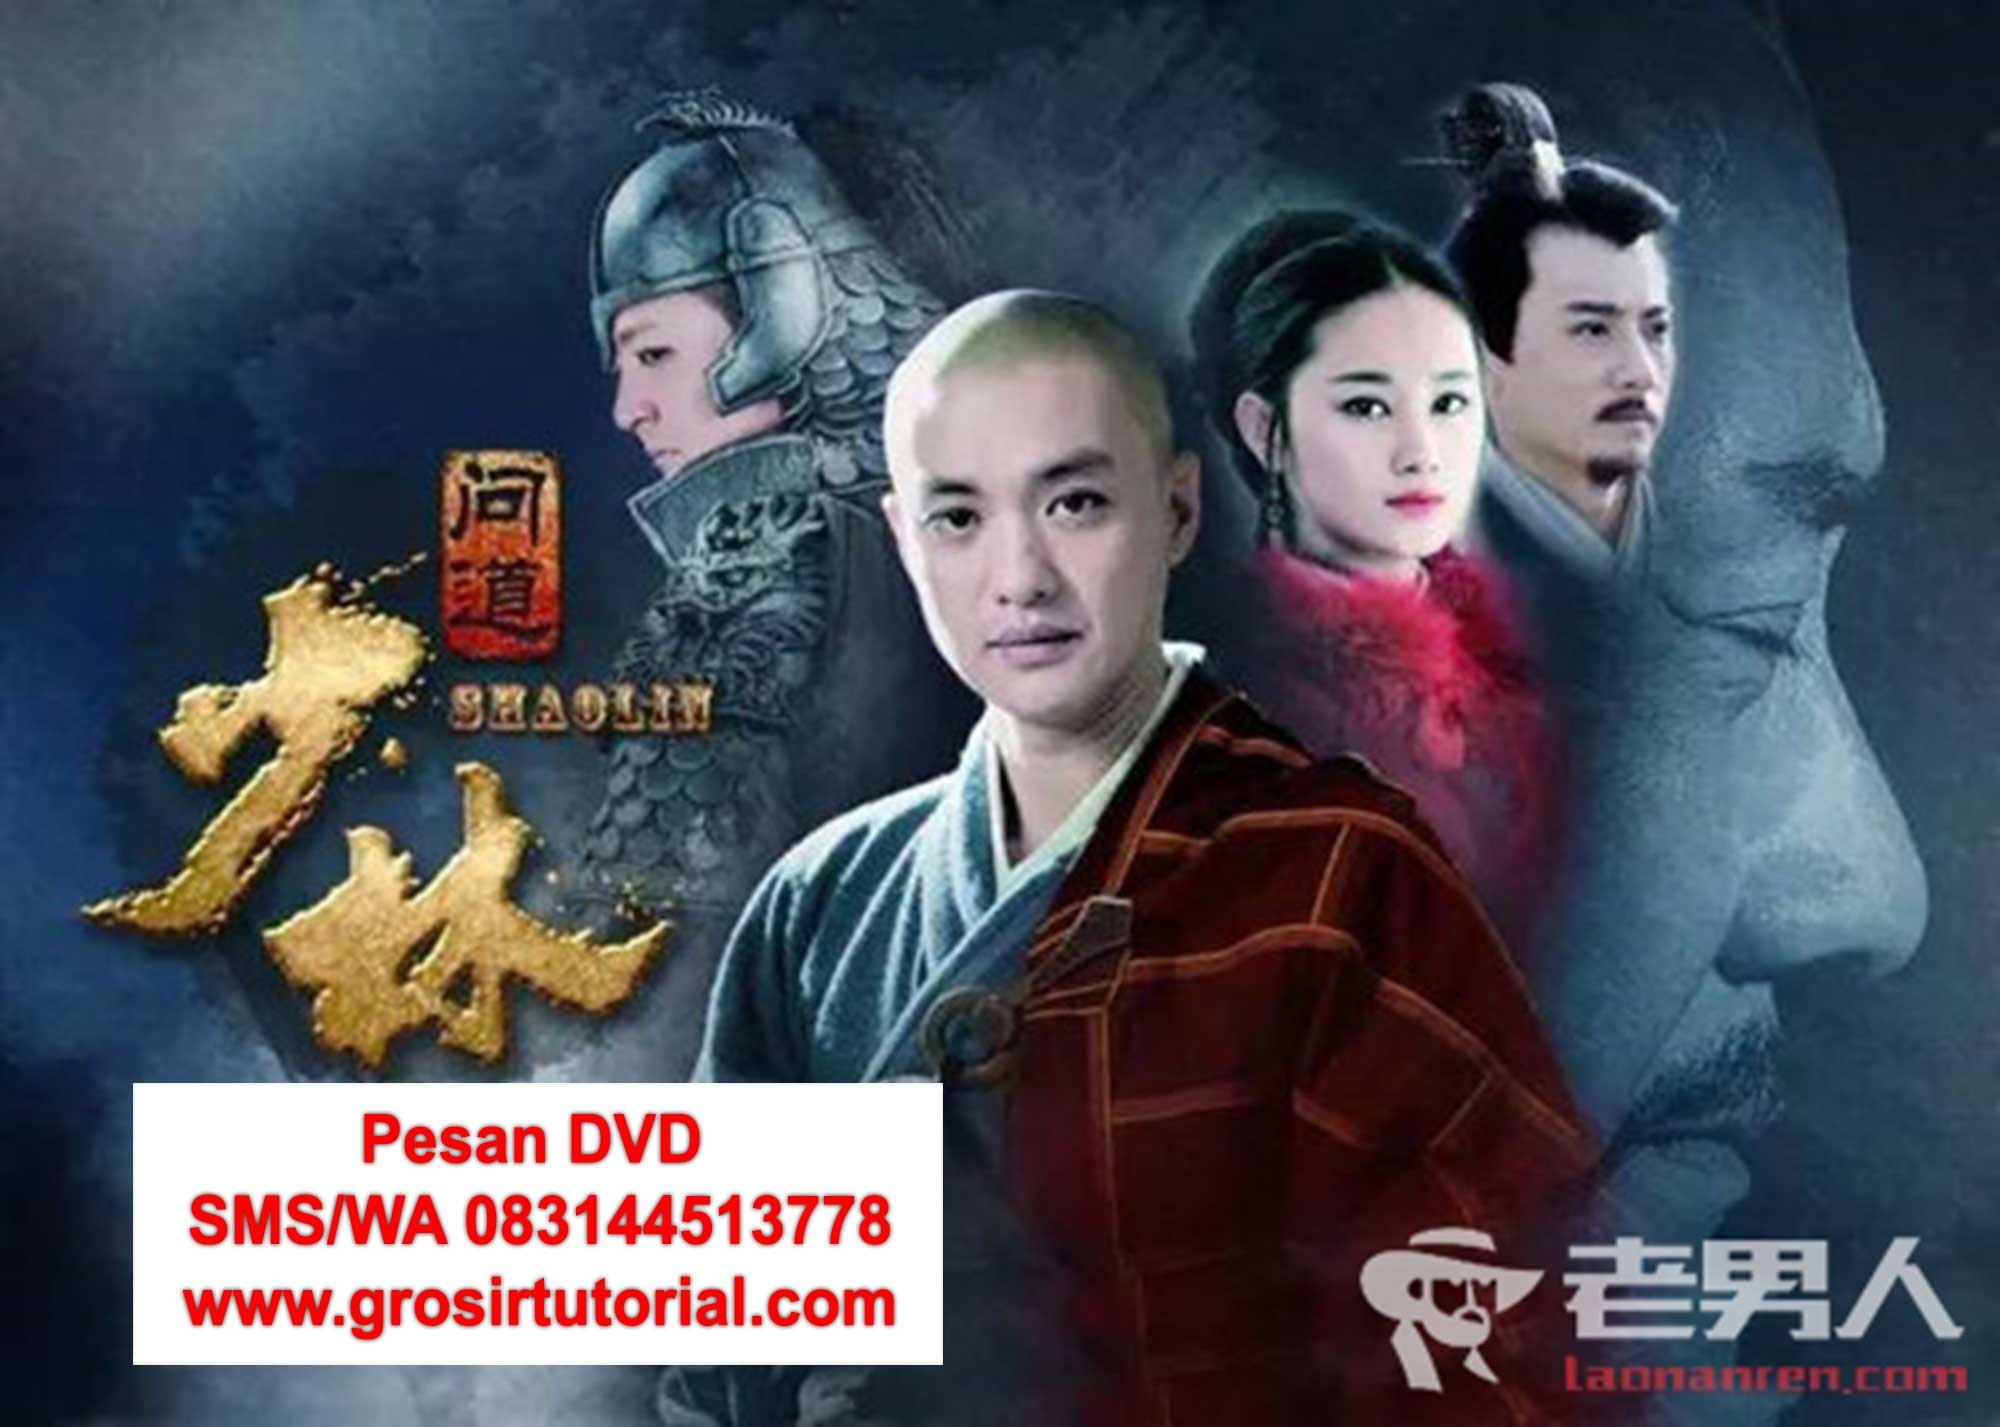 cari-DVD-mandarin-The-Great-Shaolin